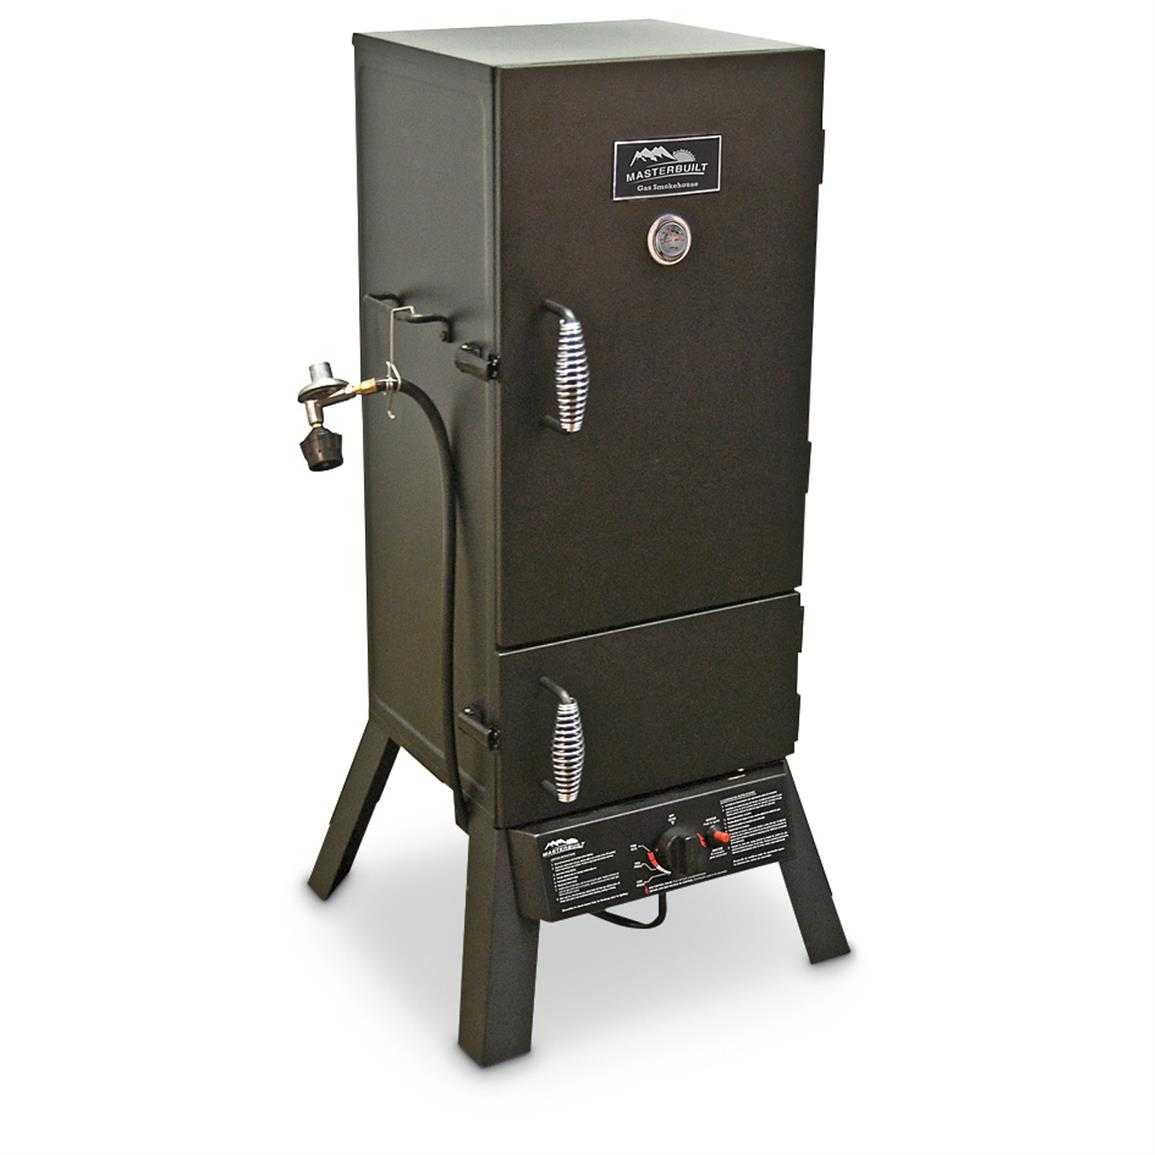 "Masterbuilt 30"" 2-door Vertical Gas Smoker"